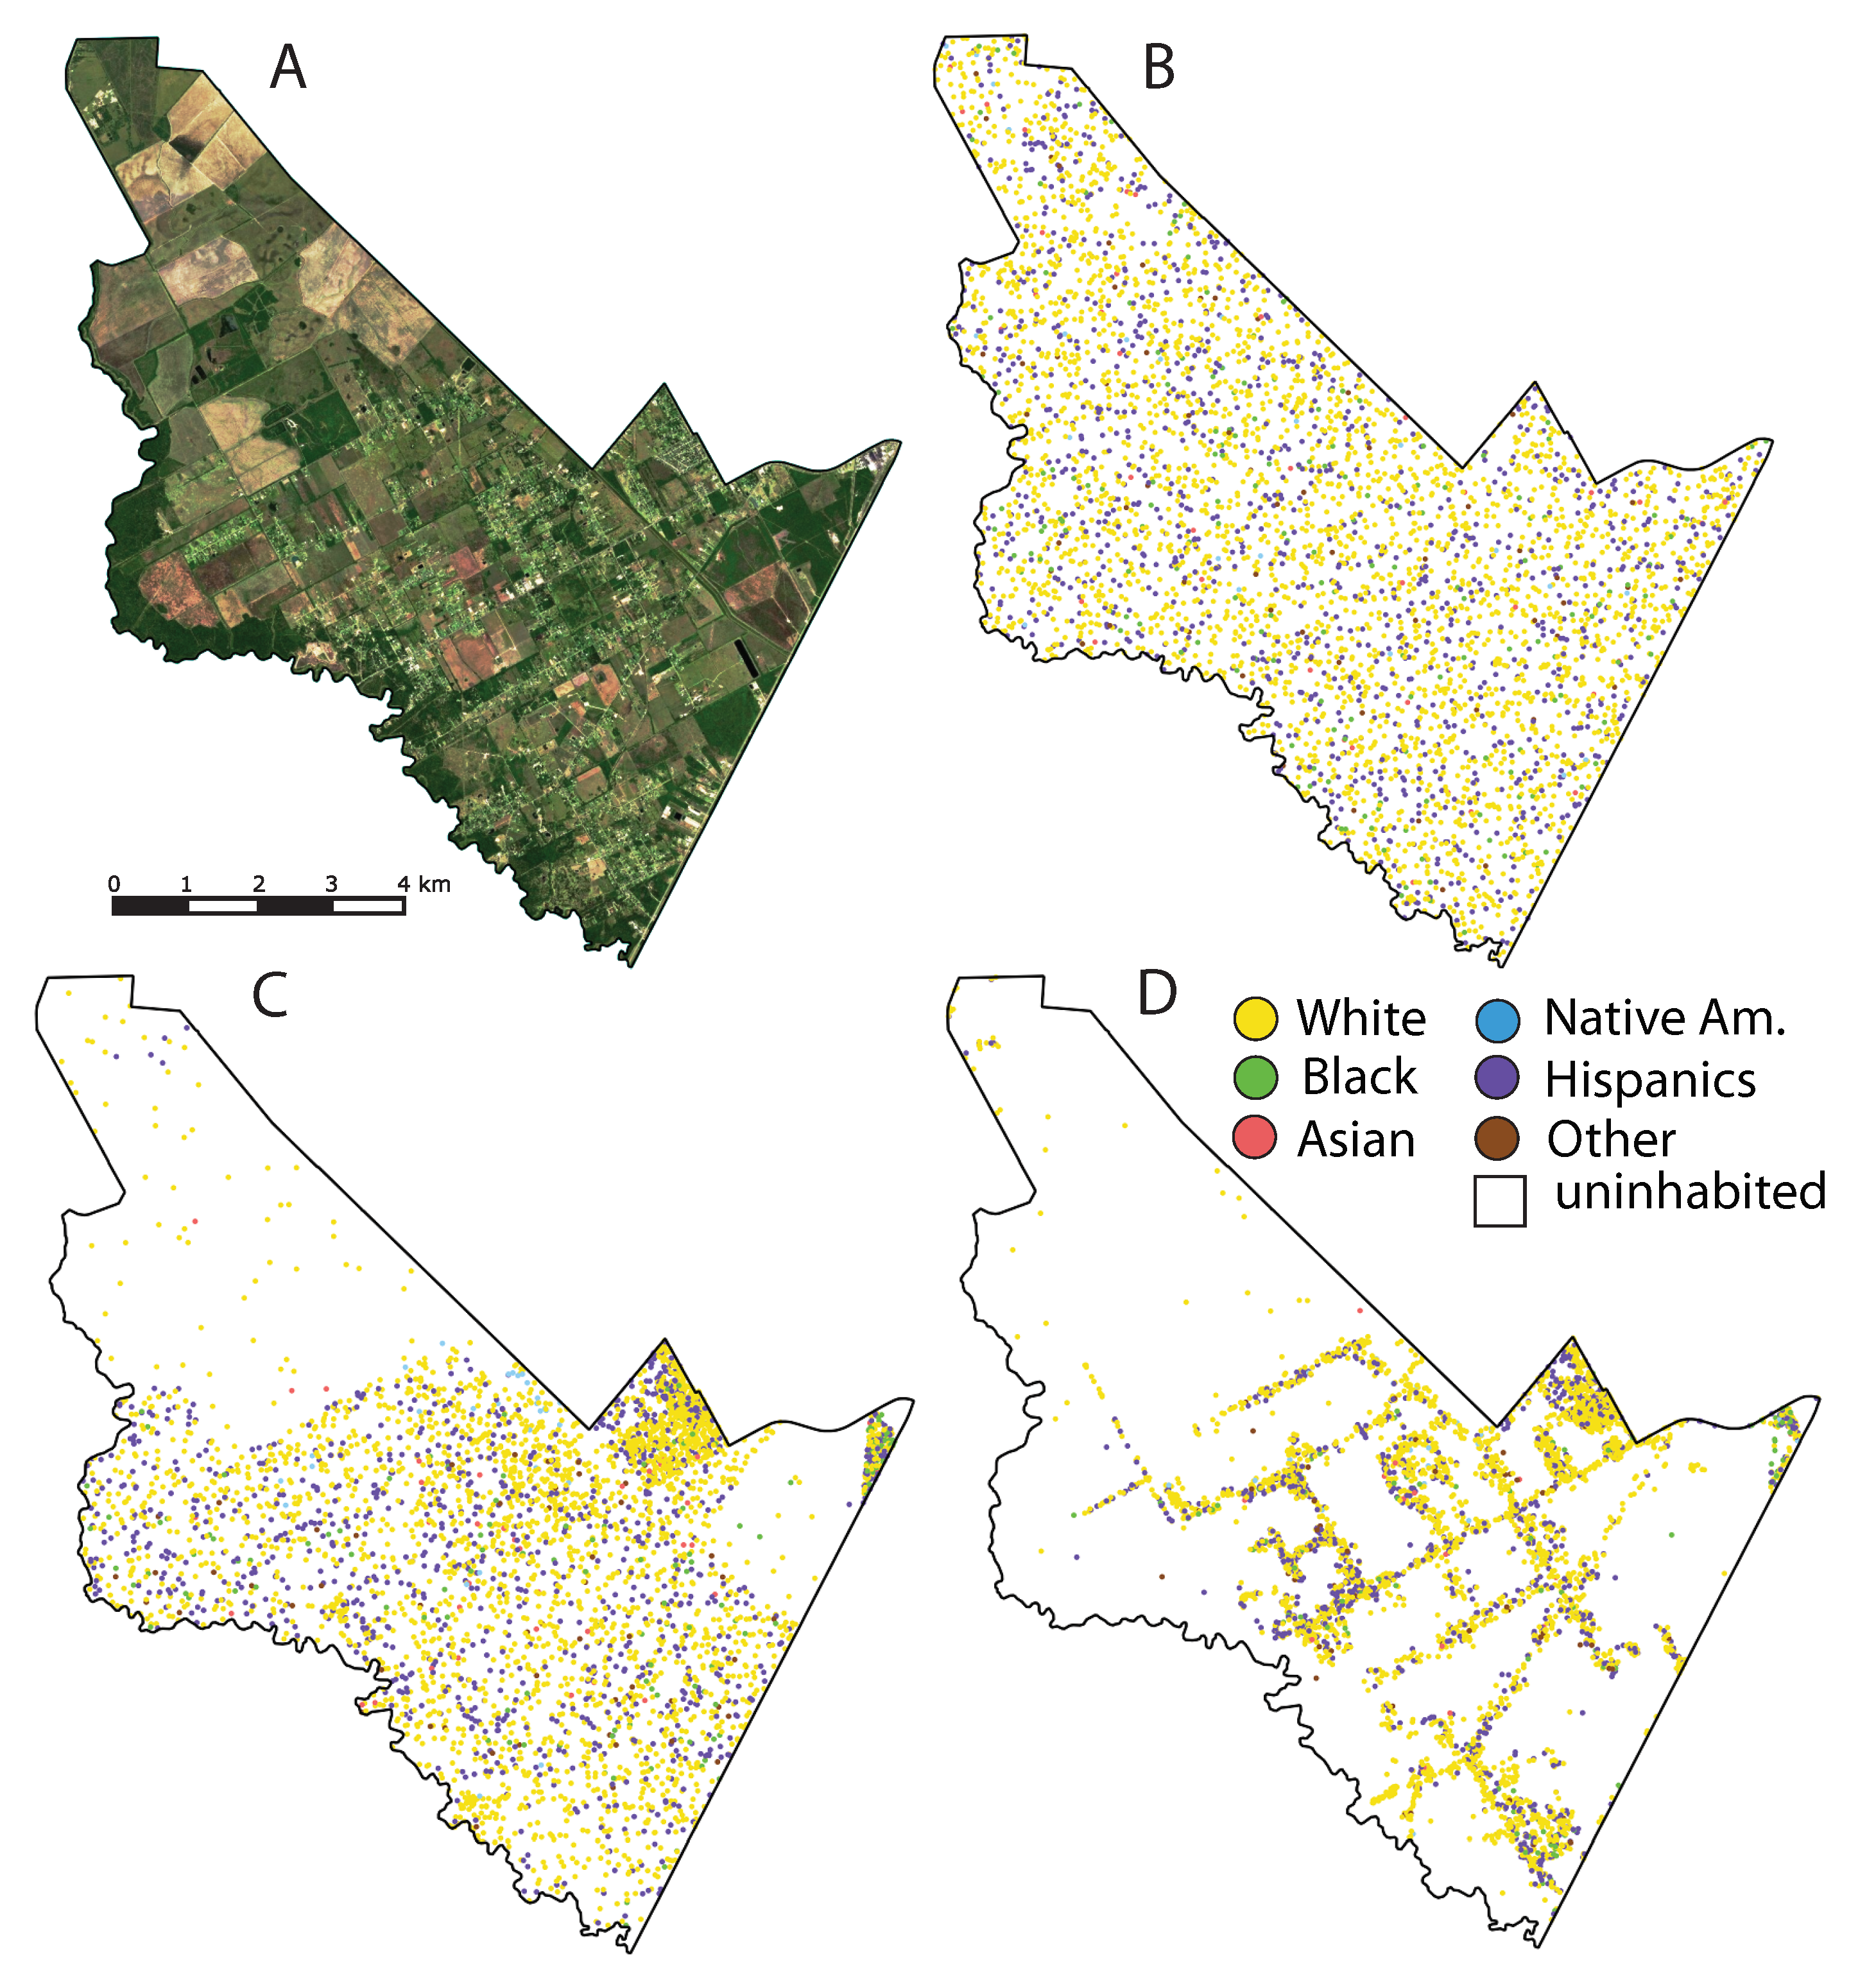 Social Sciences | Free Full-Text | Racial Dot Maps Based on ... on